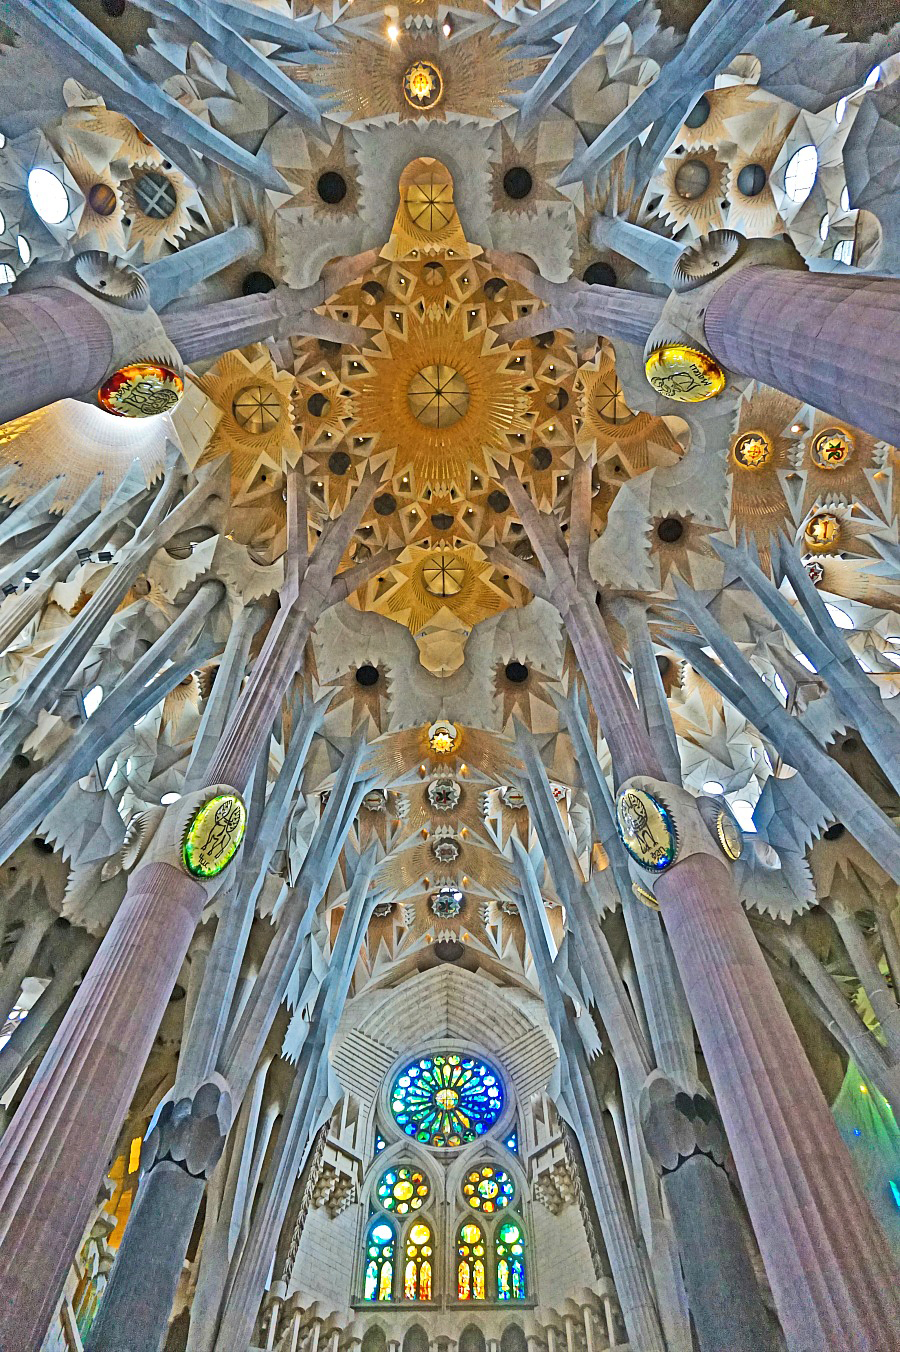 Sagrada Familia in Barcelona took me by surprised. Its interior is the most beautiful church I have ever seen.